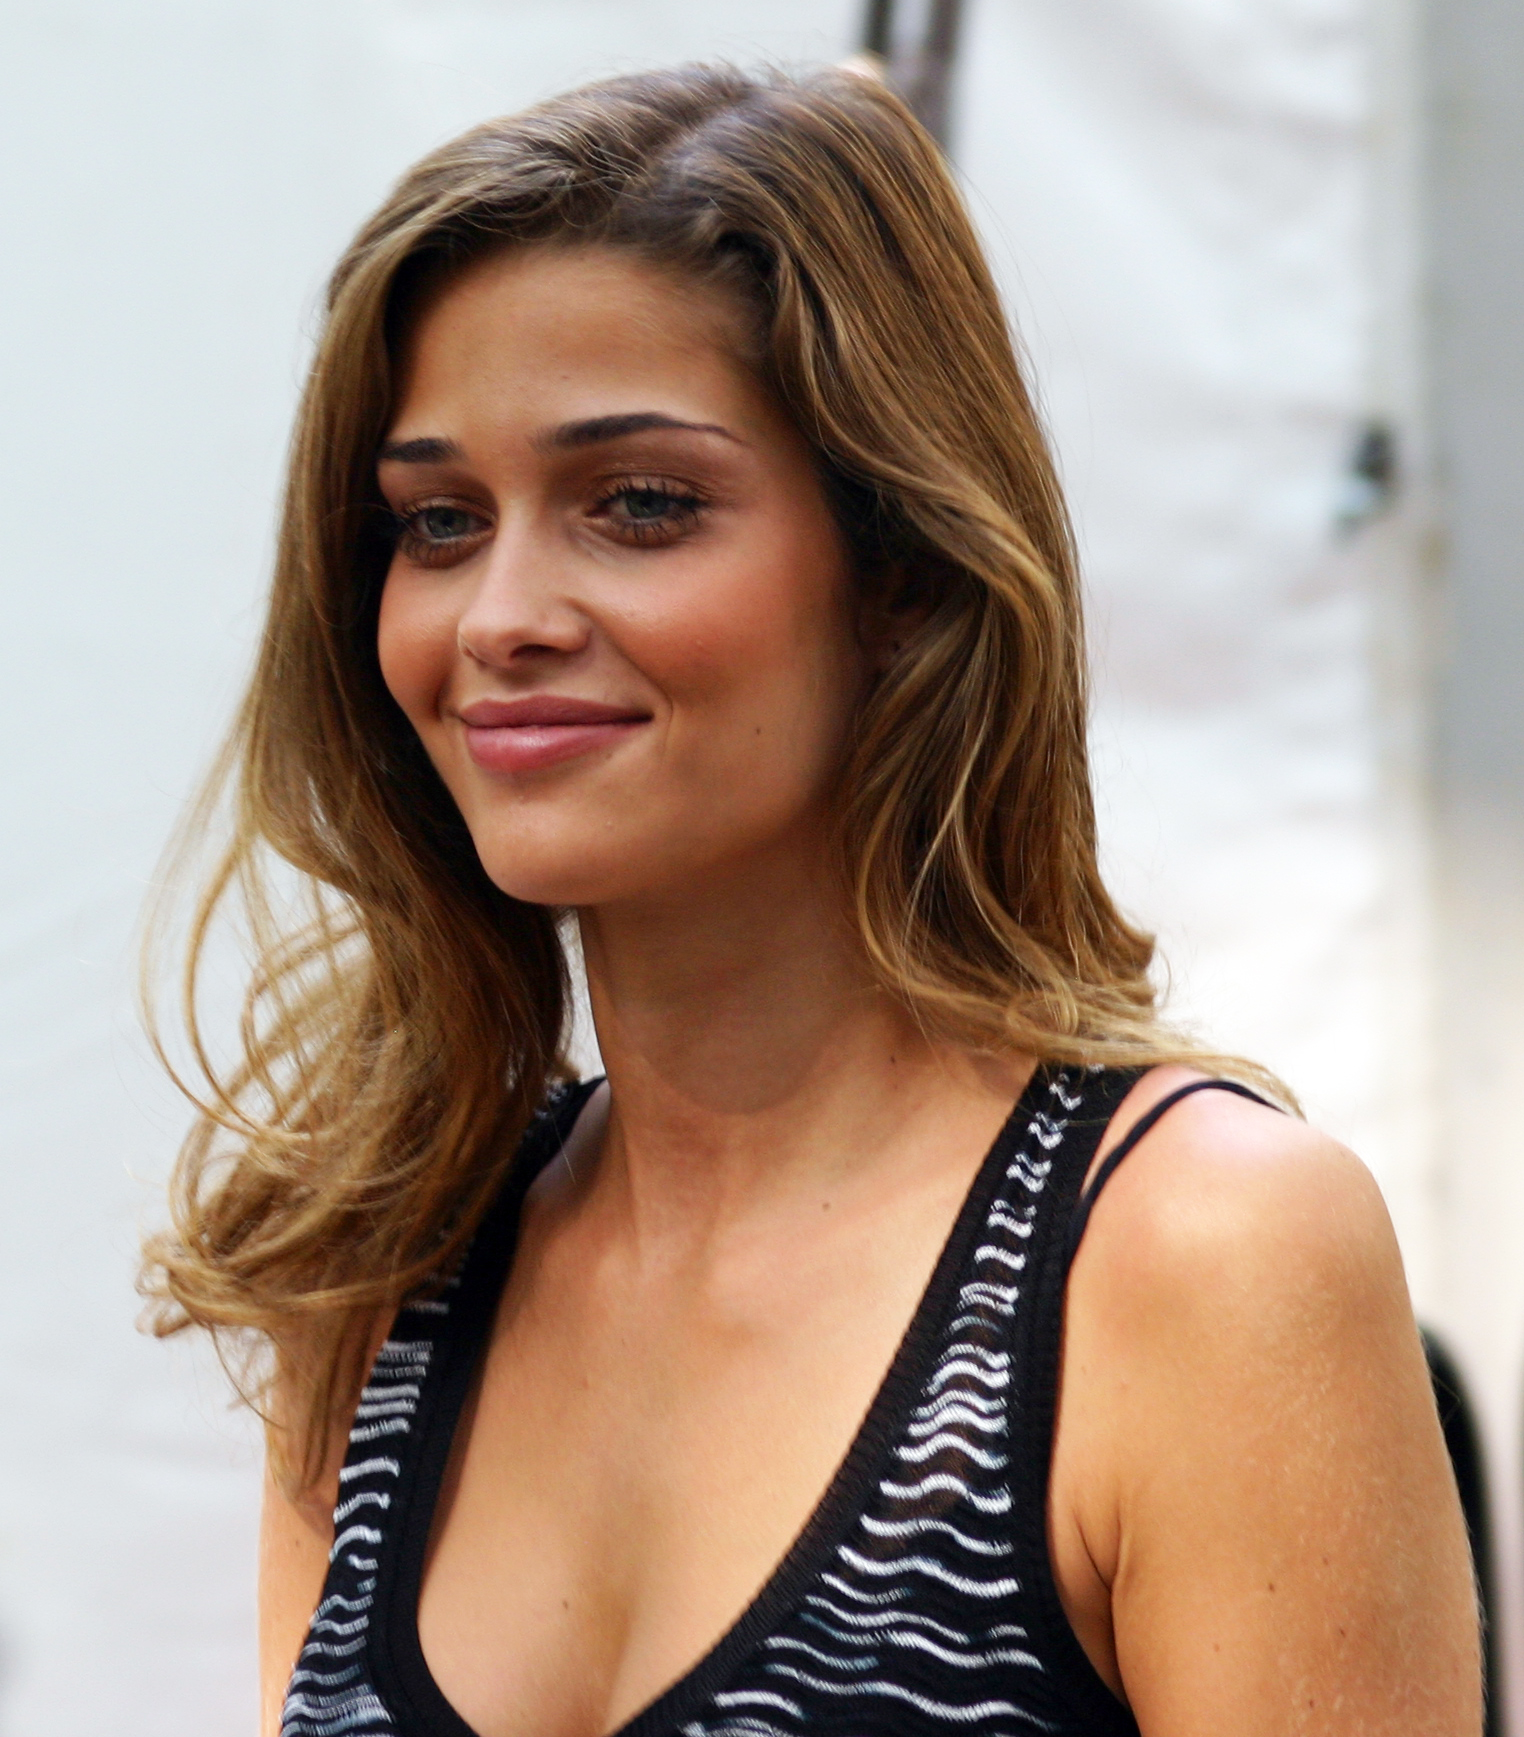 Fotos Ana Beatriz Barros nude (41 photo), Pussy, Is a cute, Instagram, swimsuit 2019